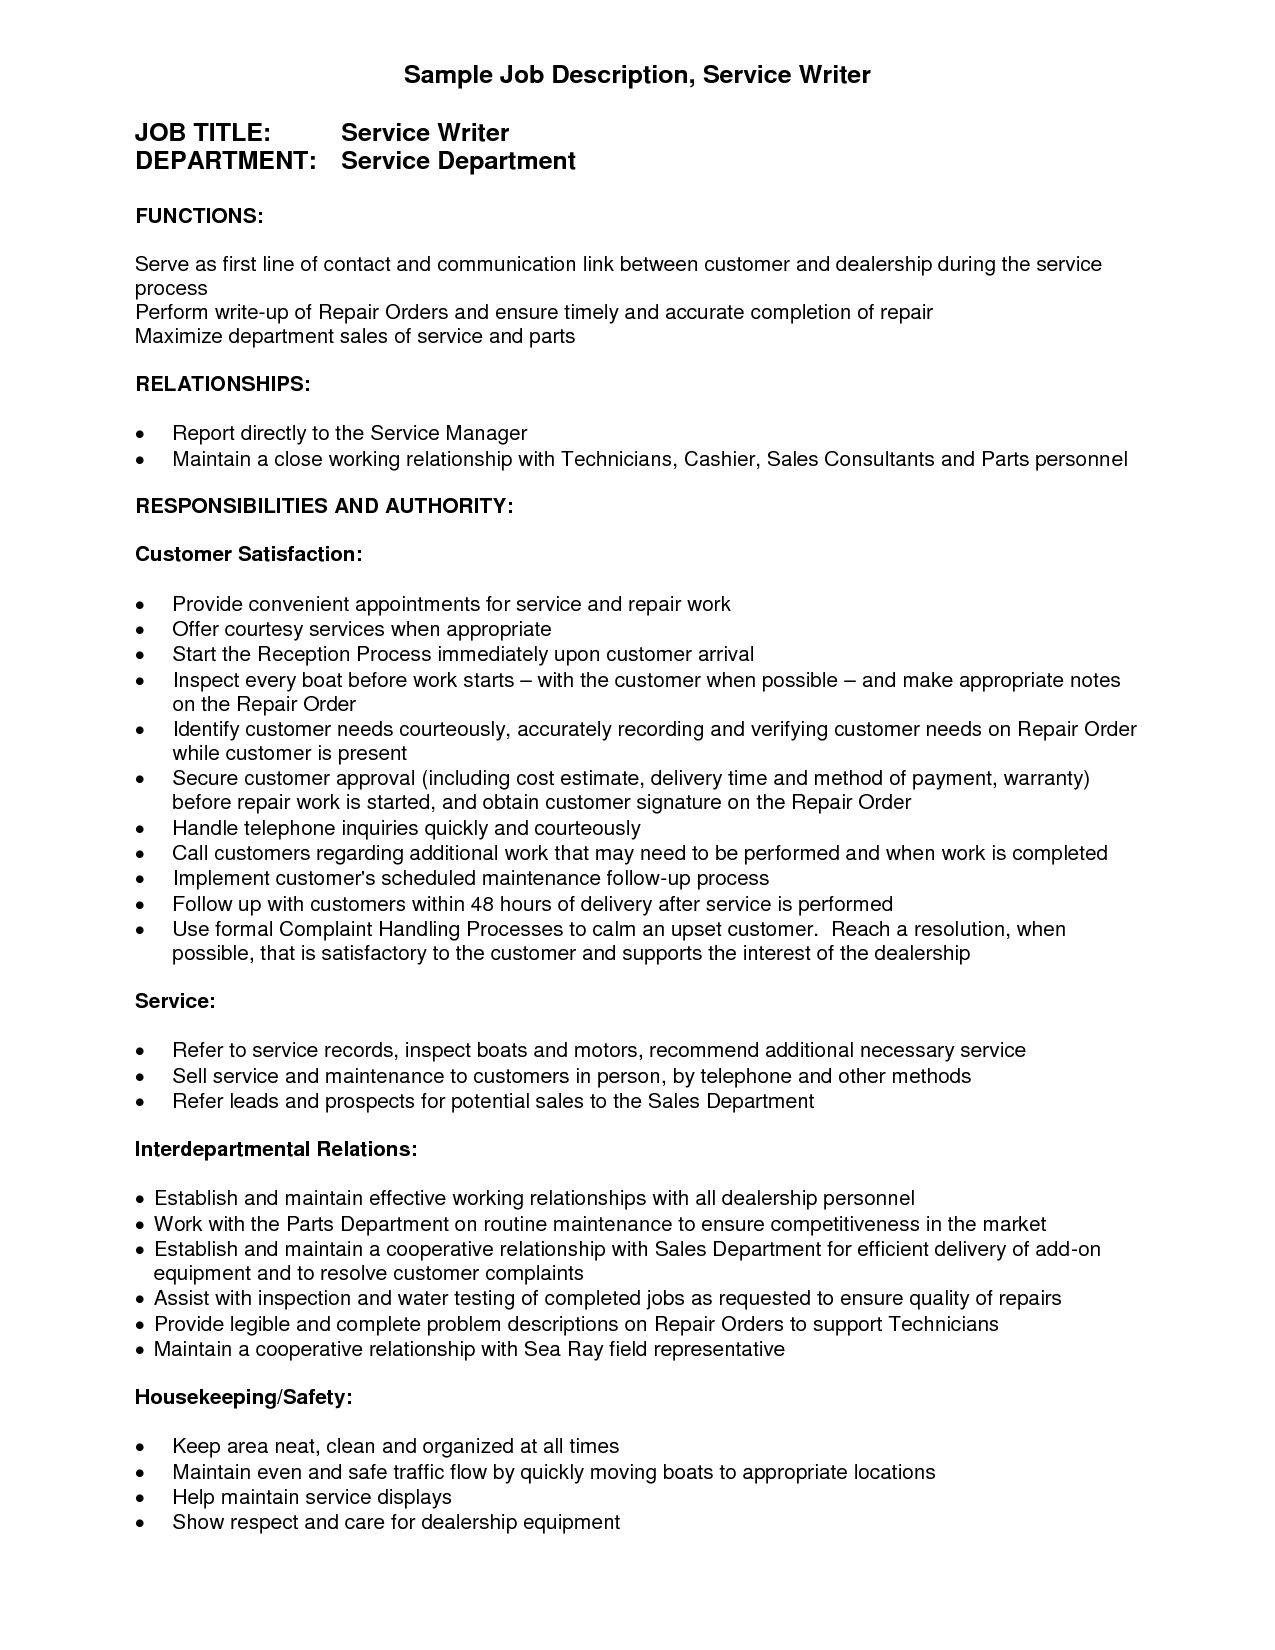 Compassion Letter Writing Template - Resume Writing Service Best Templatewriting A Resume Cover Letter